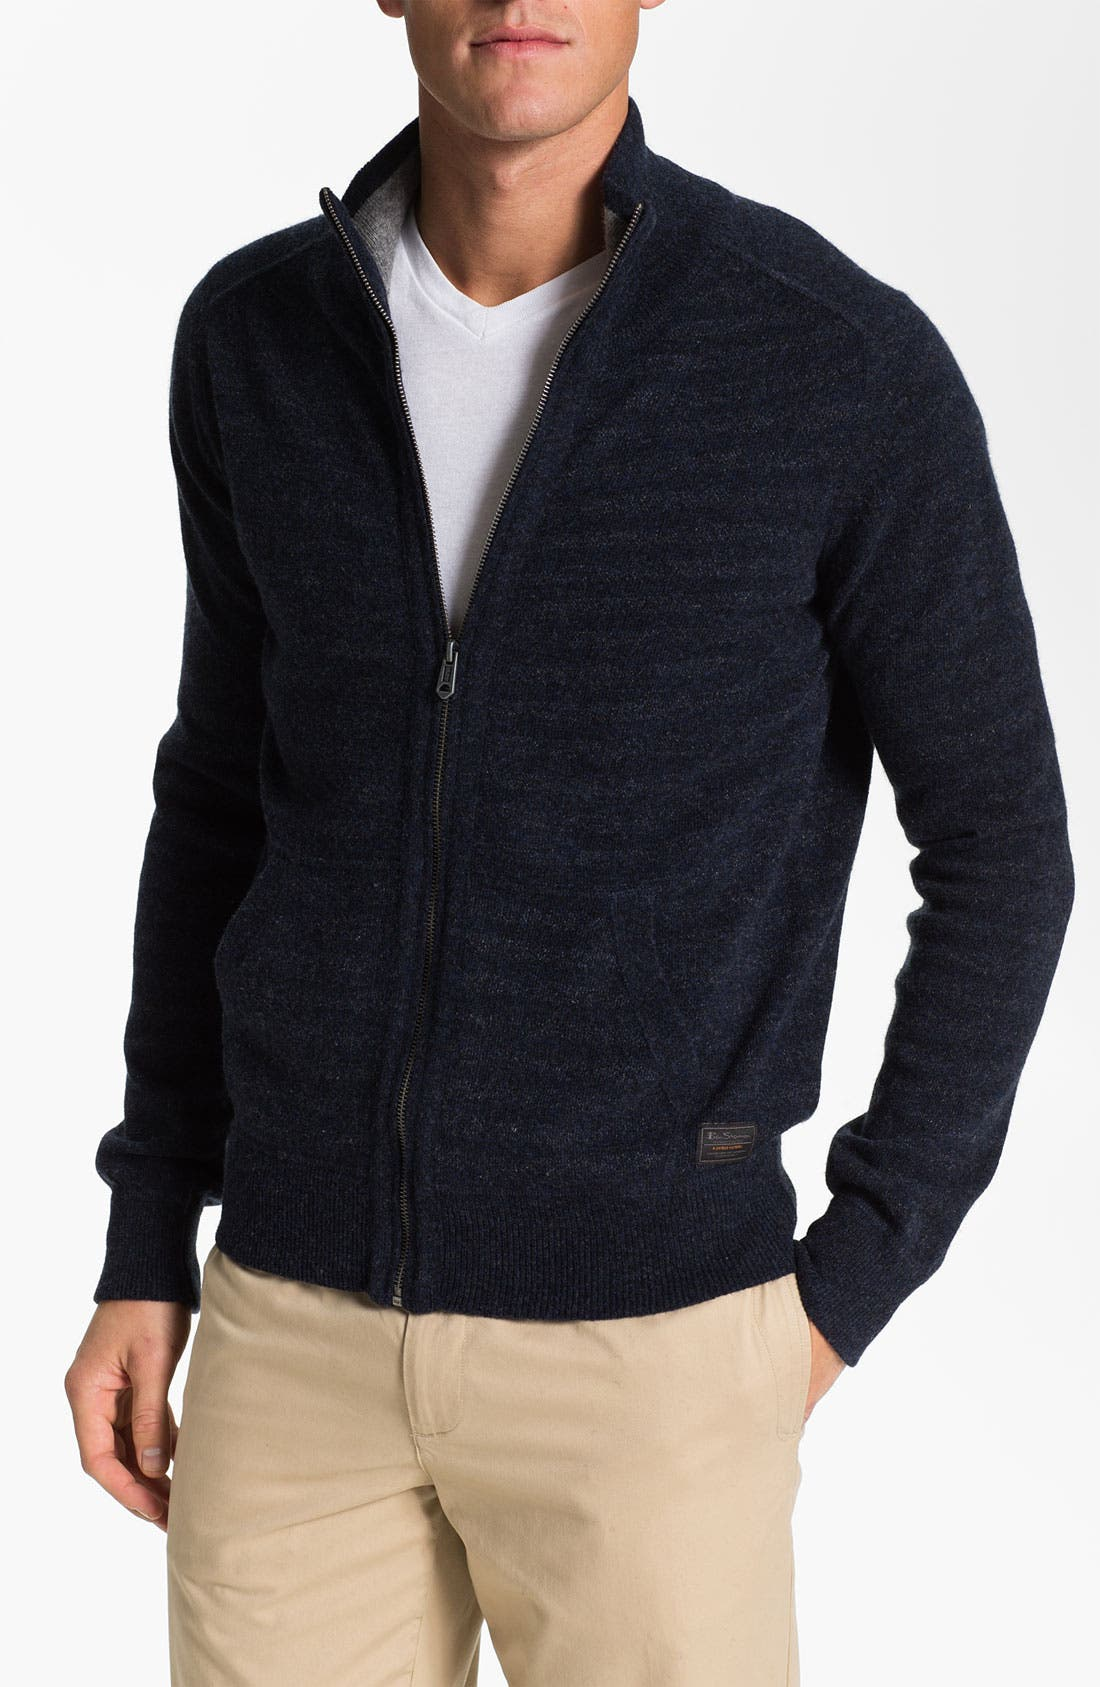 Alternate Image 1 Selected - Ben Sherman Zip Sweater